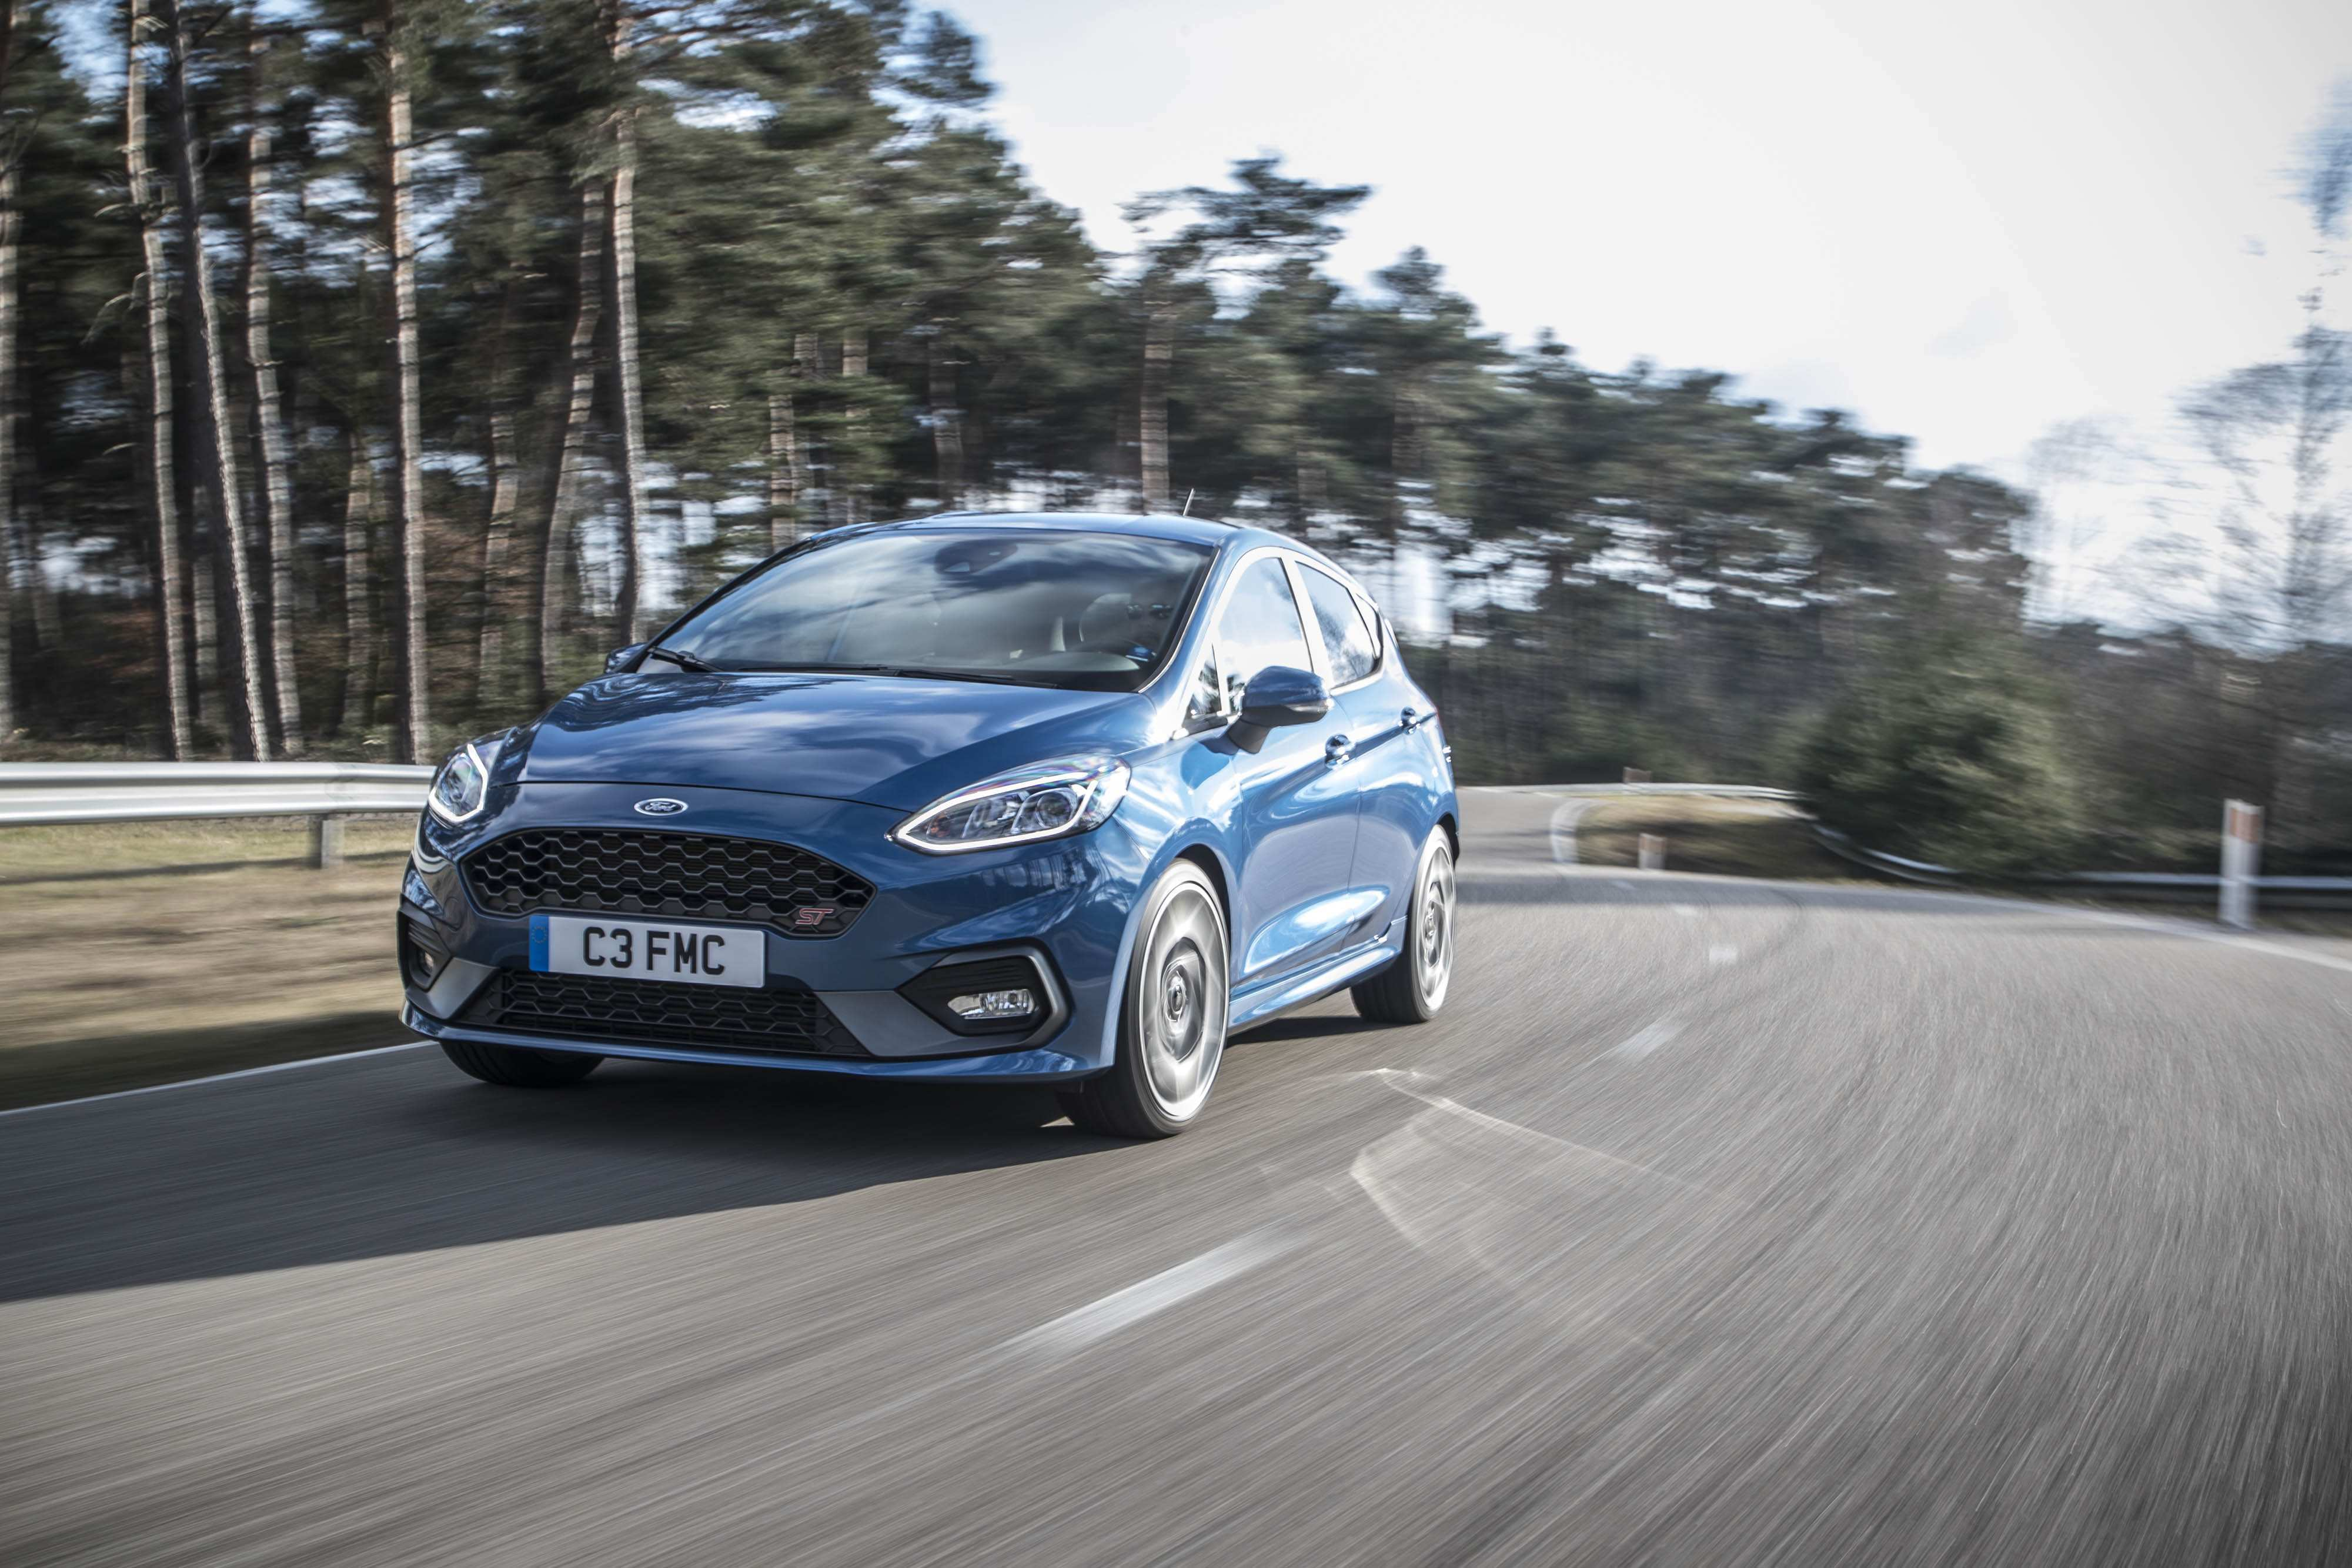 24 A 2020 Ford Fiesta Price Design And Review